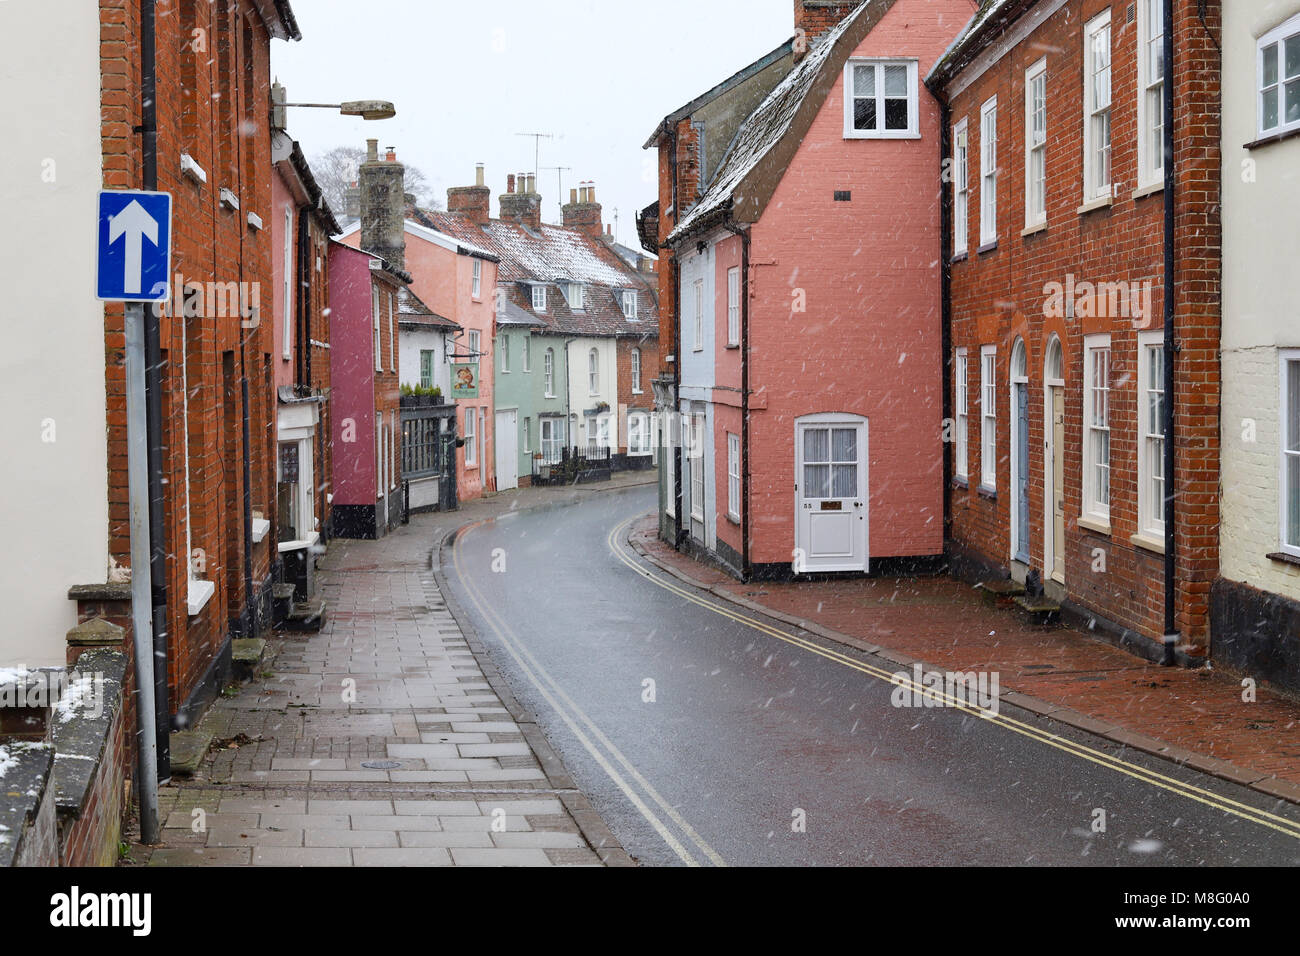 One way narrow street of colourful buildings in Woodbridge, Suffolk. Winter, light snow, March 2018. - Stock Image